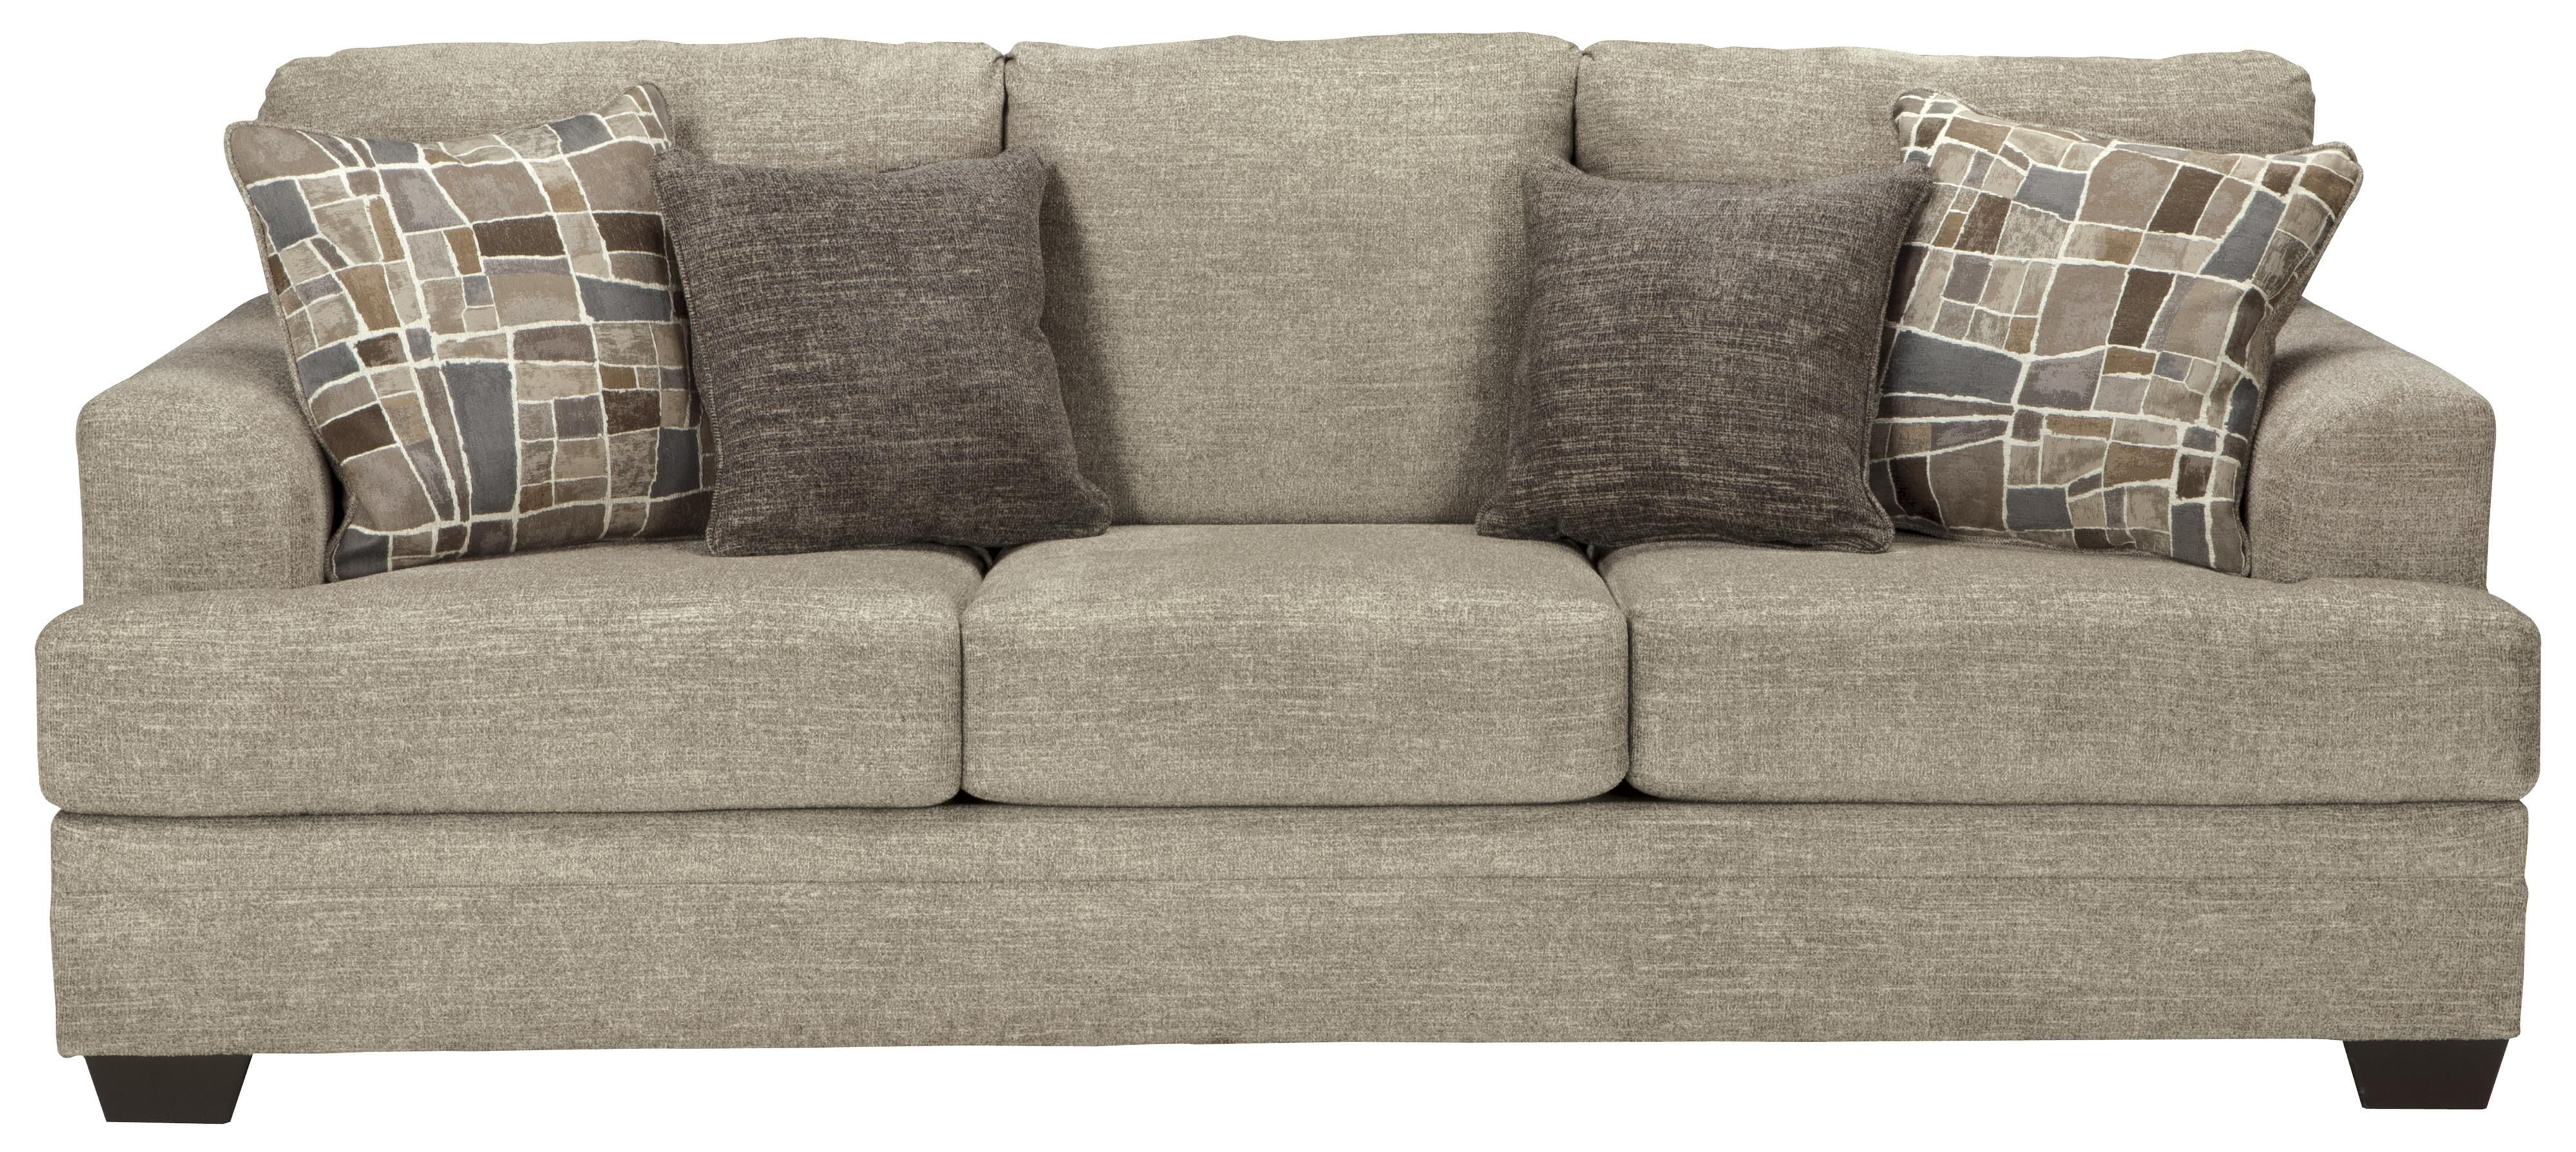 Incredible Barrish Contemporary Queen Sofa Sleeper With Flared Arms By Machost Co Dining Chair Design Ideas Machostcouk